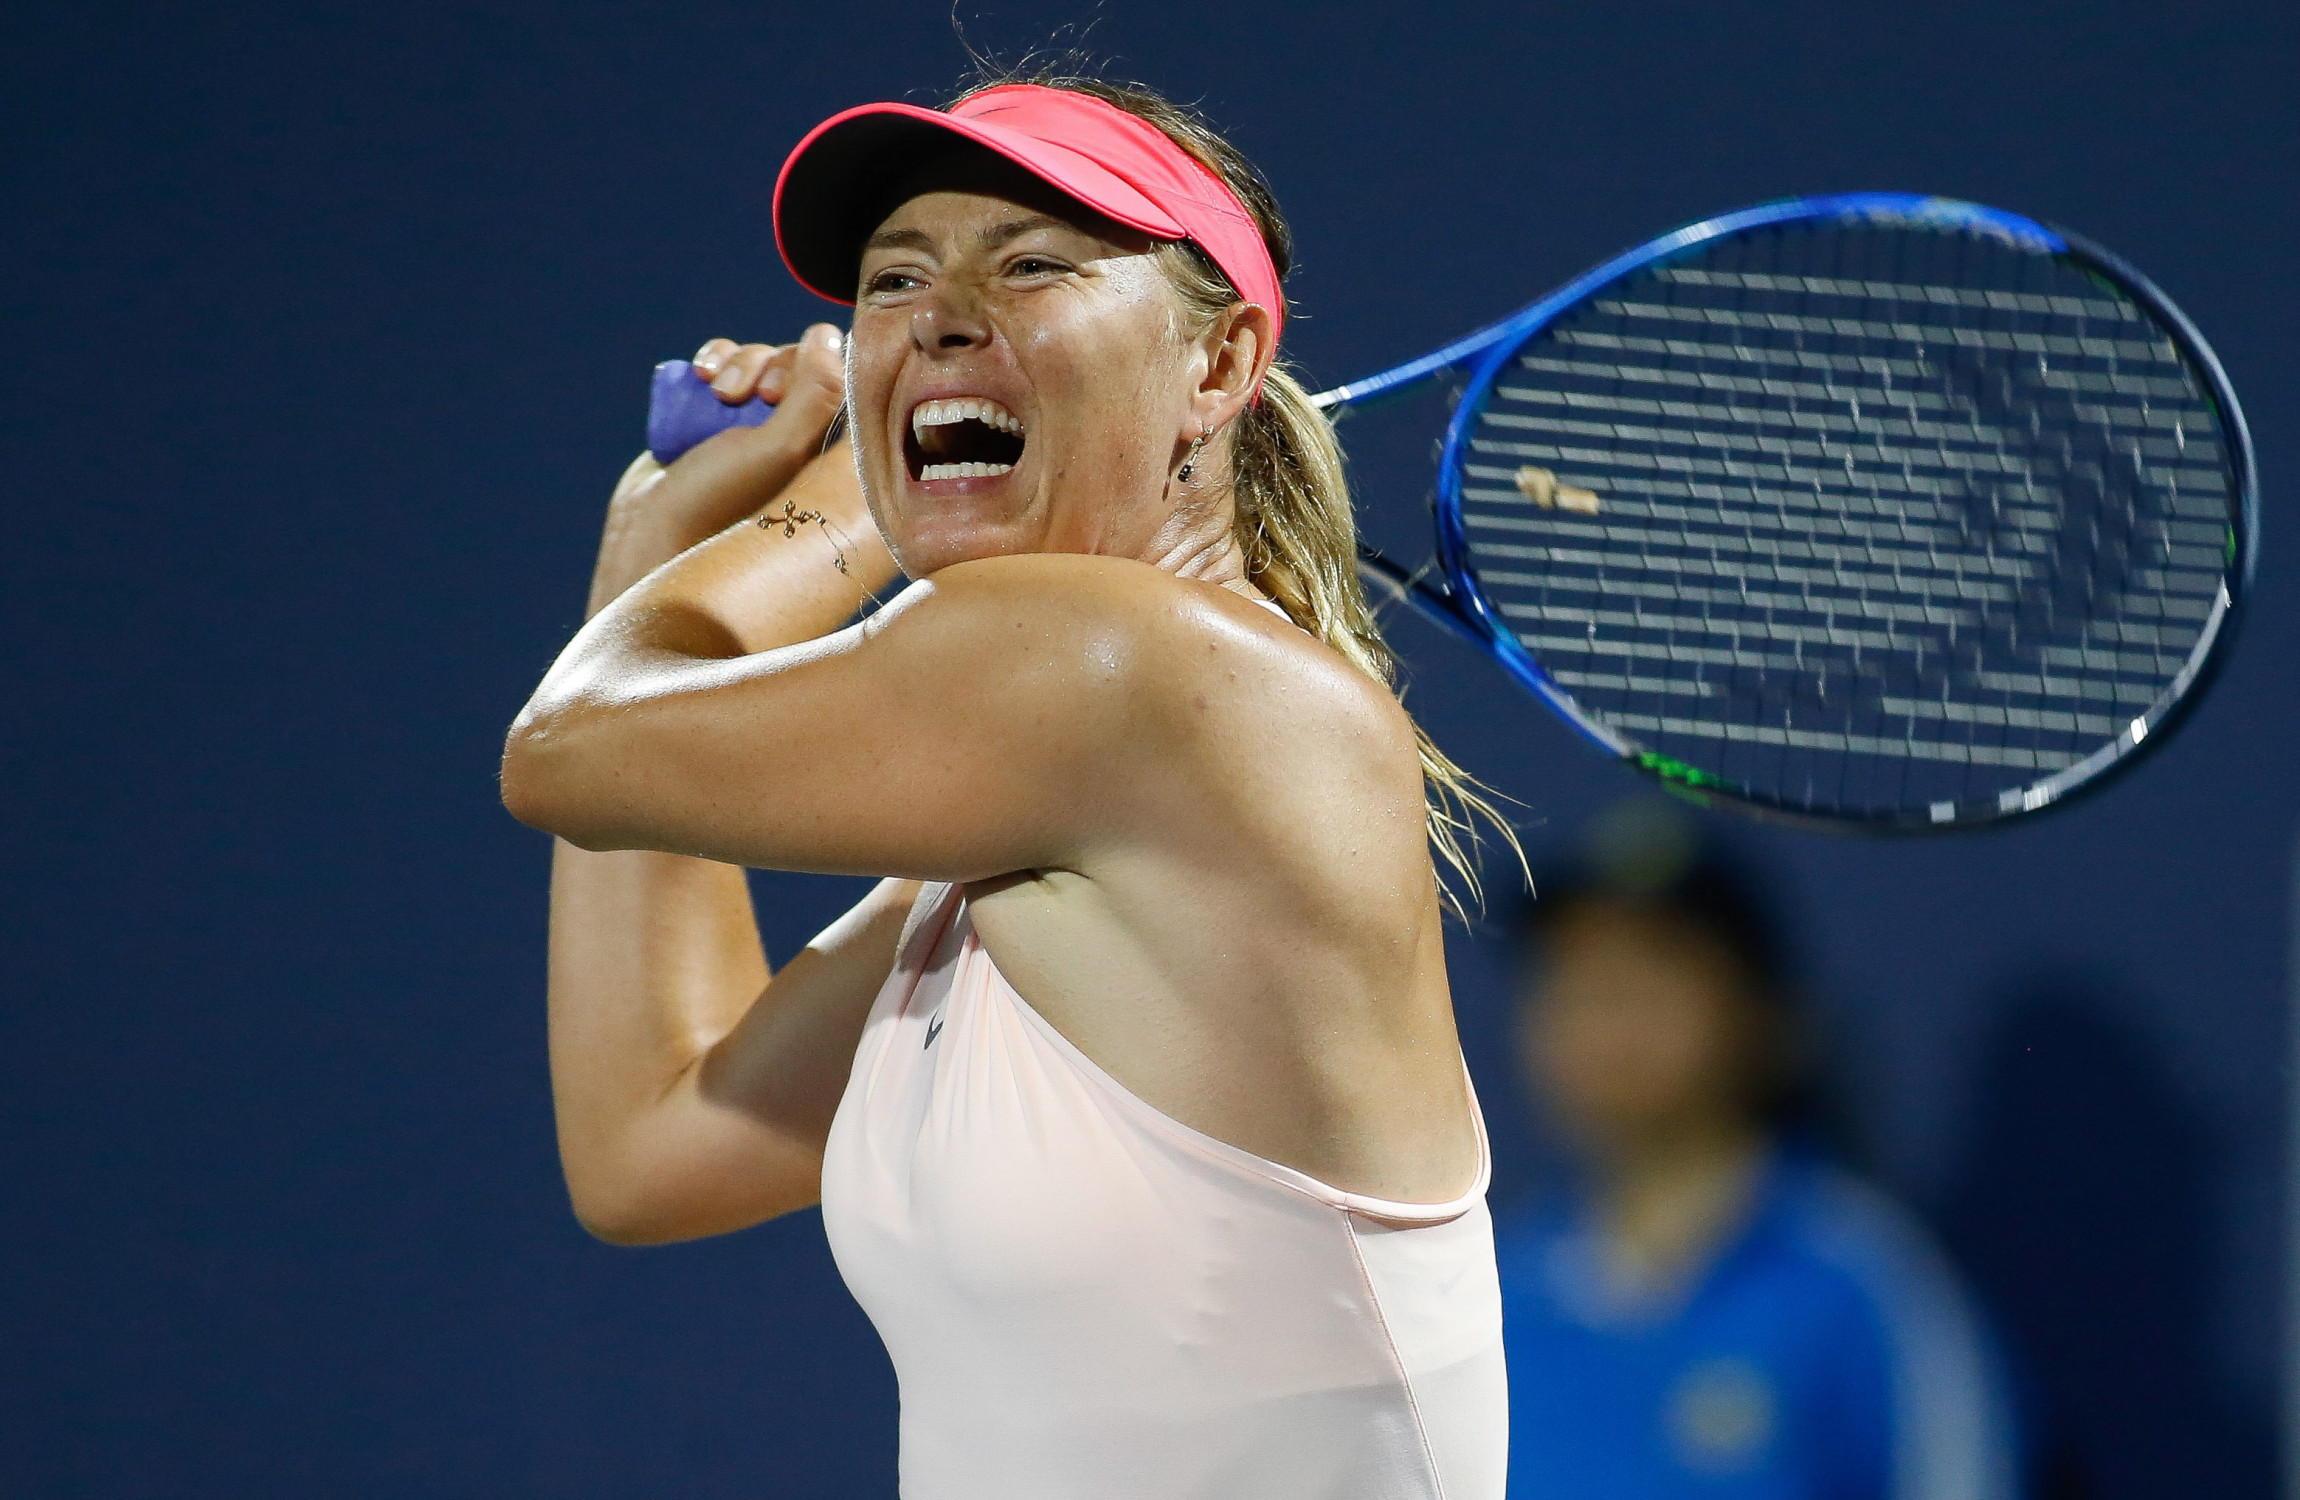 Maria Sharapova earns wild card entry into US Open